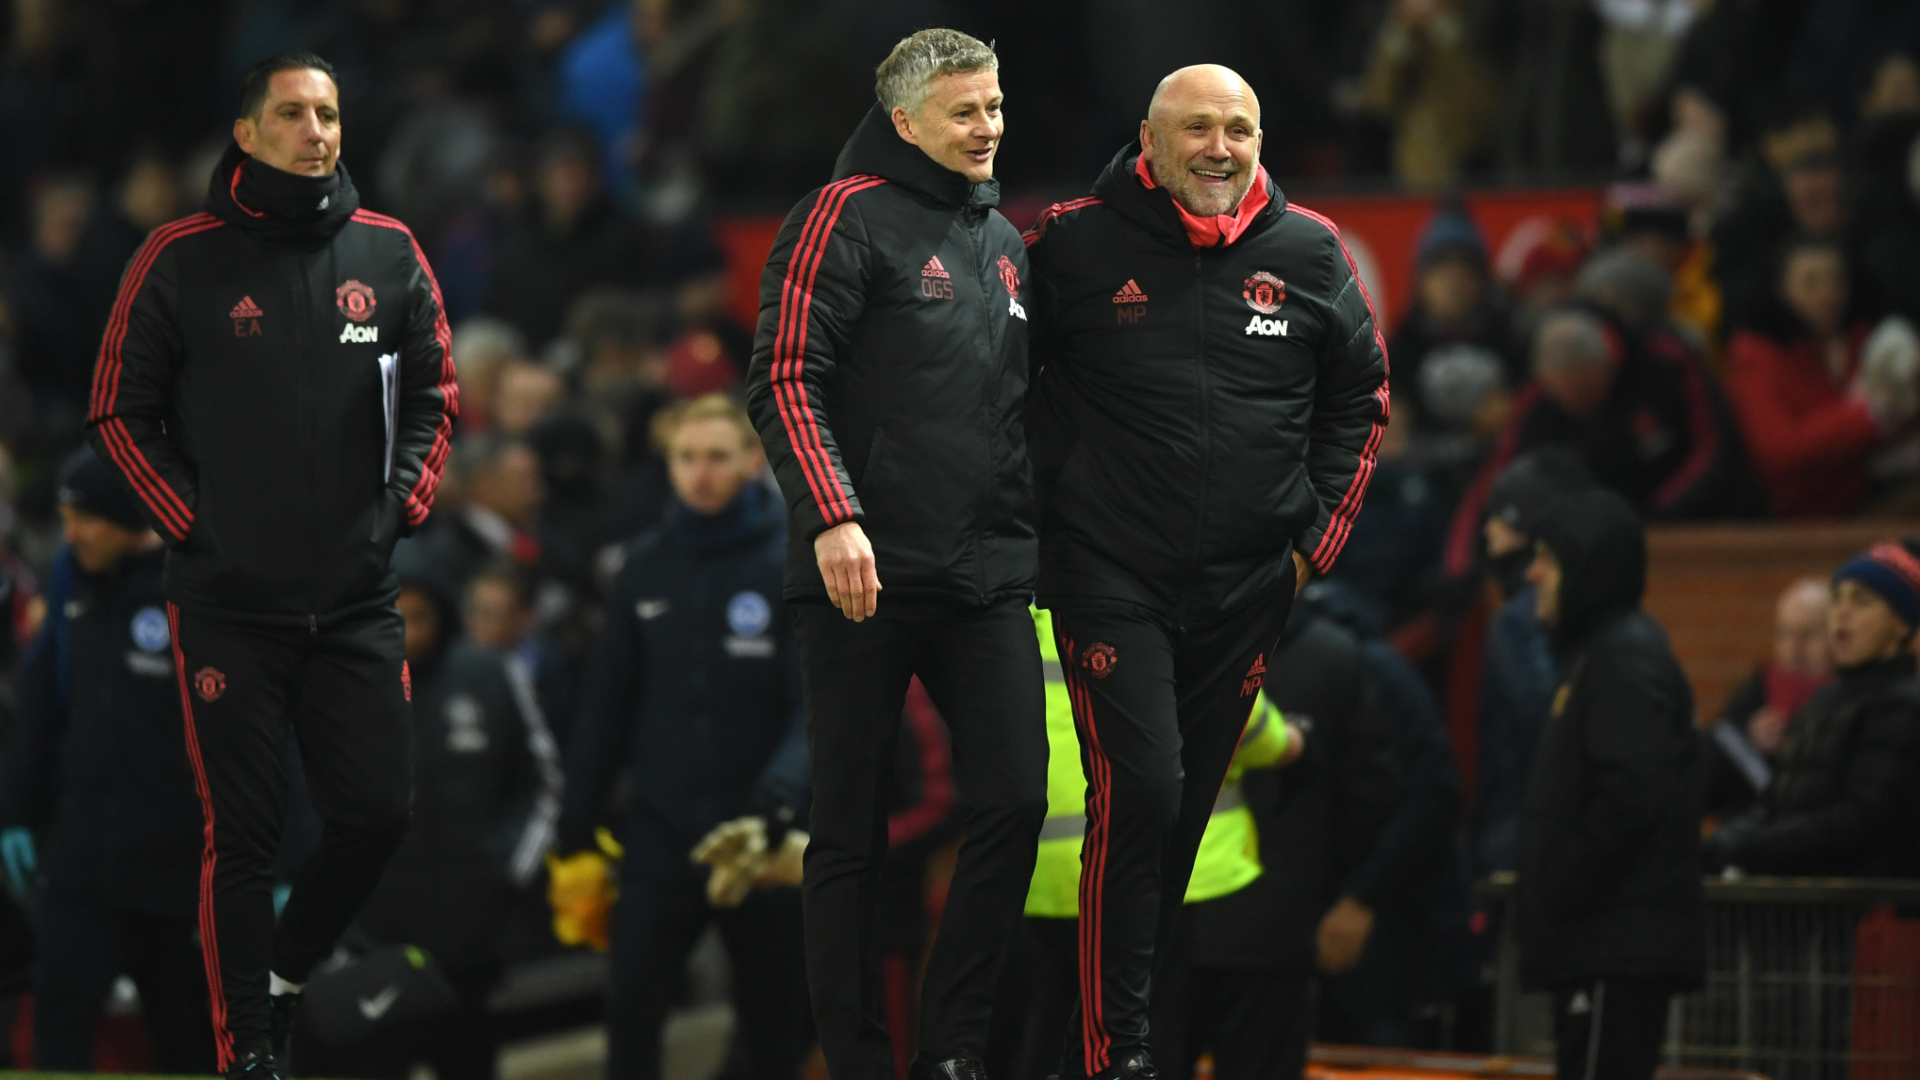 Mike Phelan wants to keep Manchester United and Central Coast Mariners roles